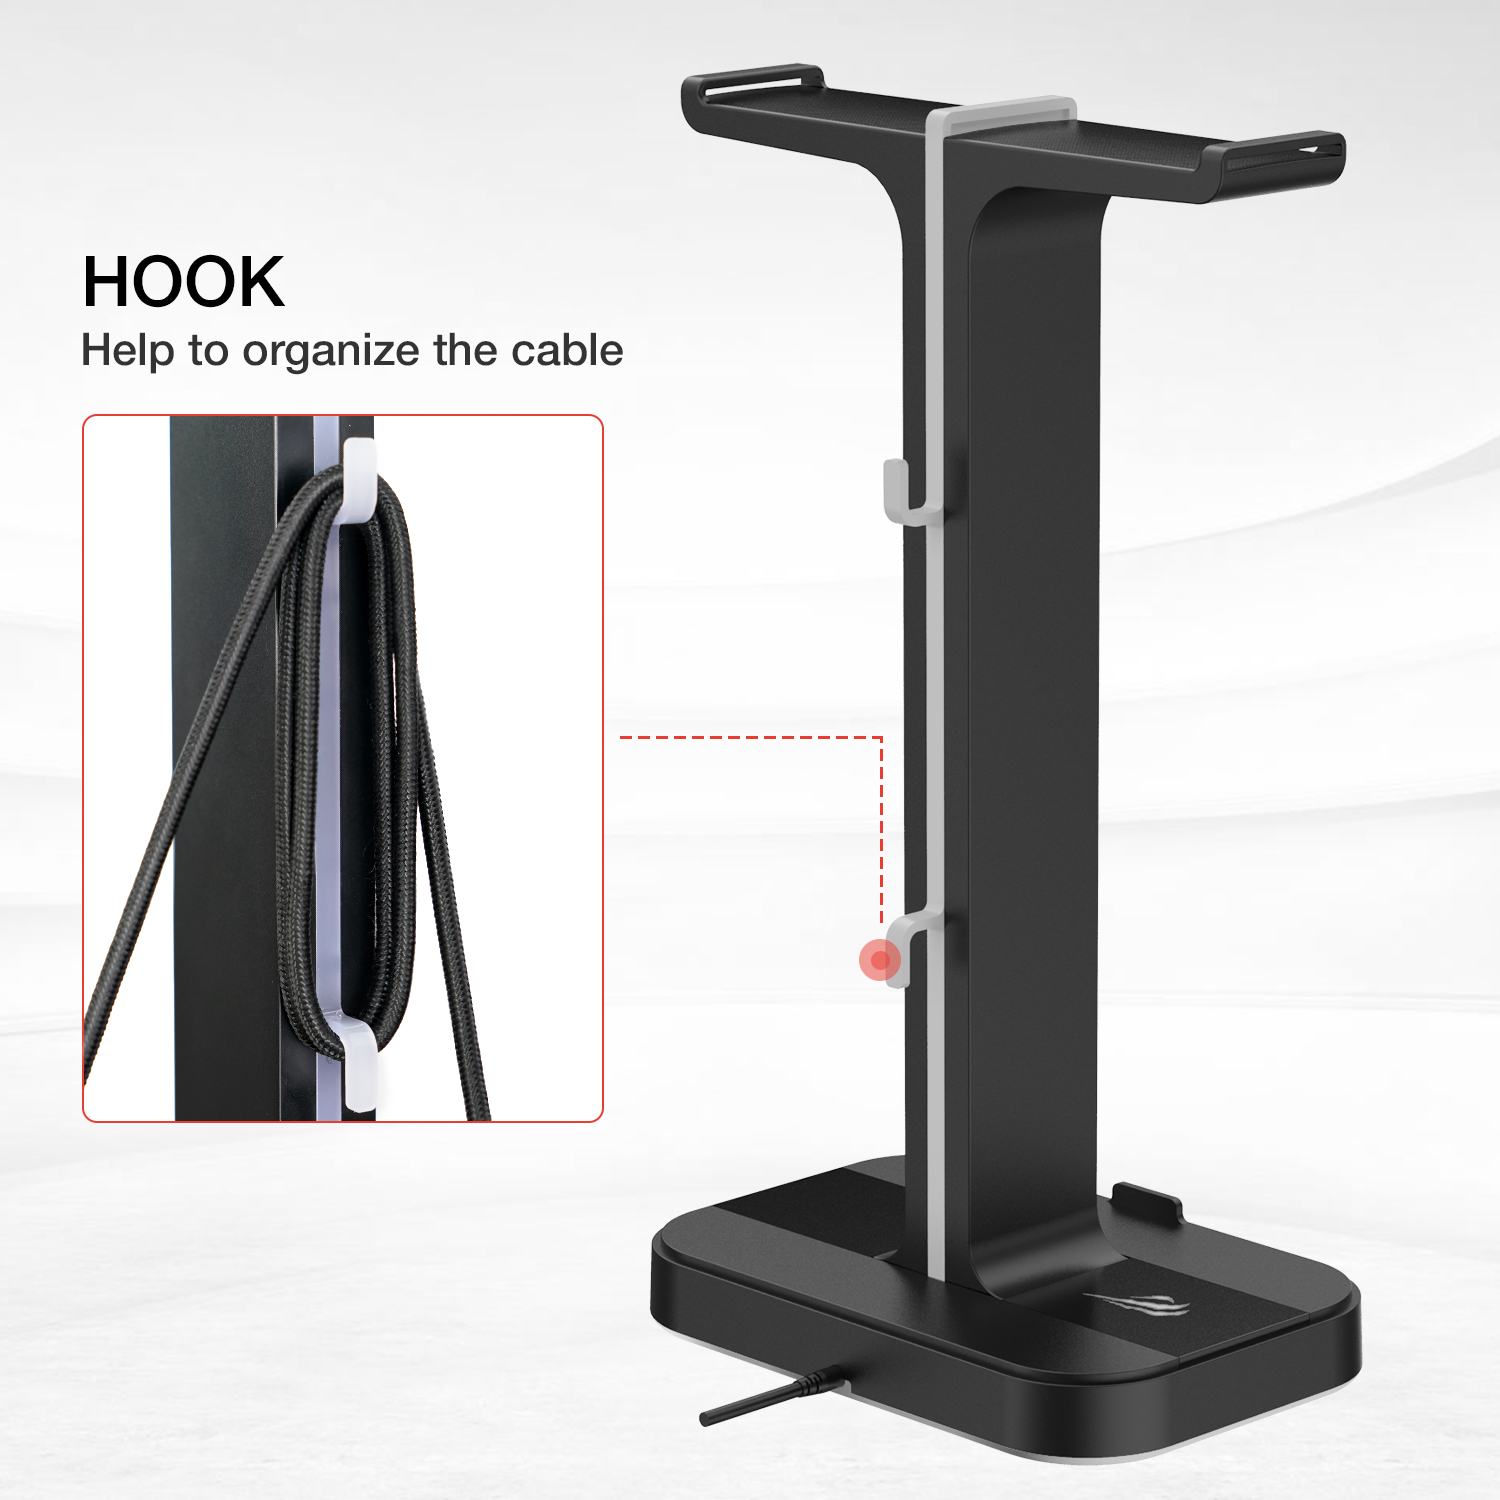 Havit RGB Gamer Headphone Stand with 2 USB Charger Ports 3